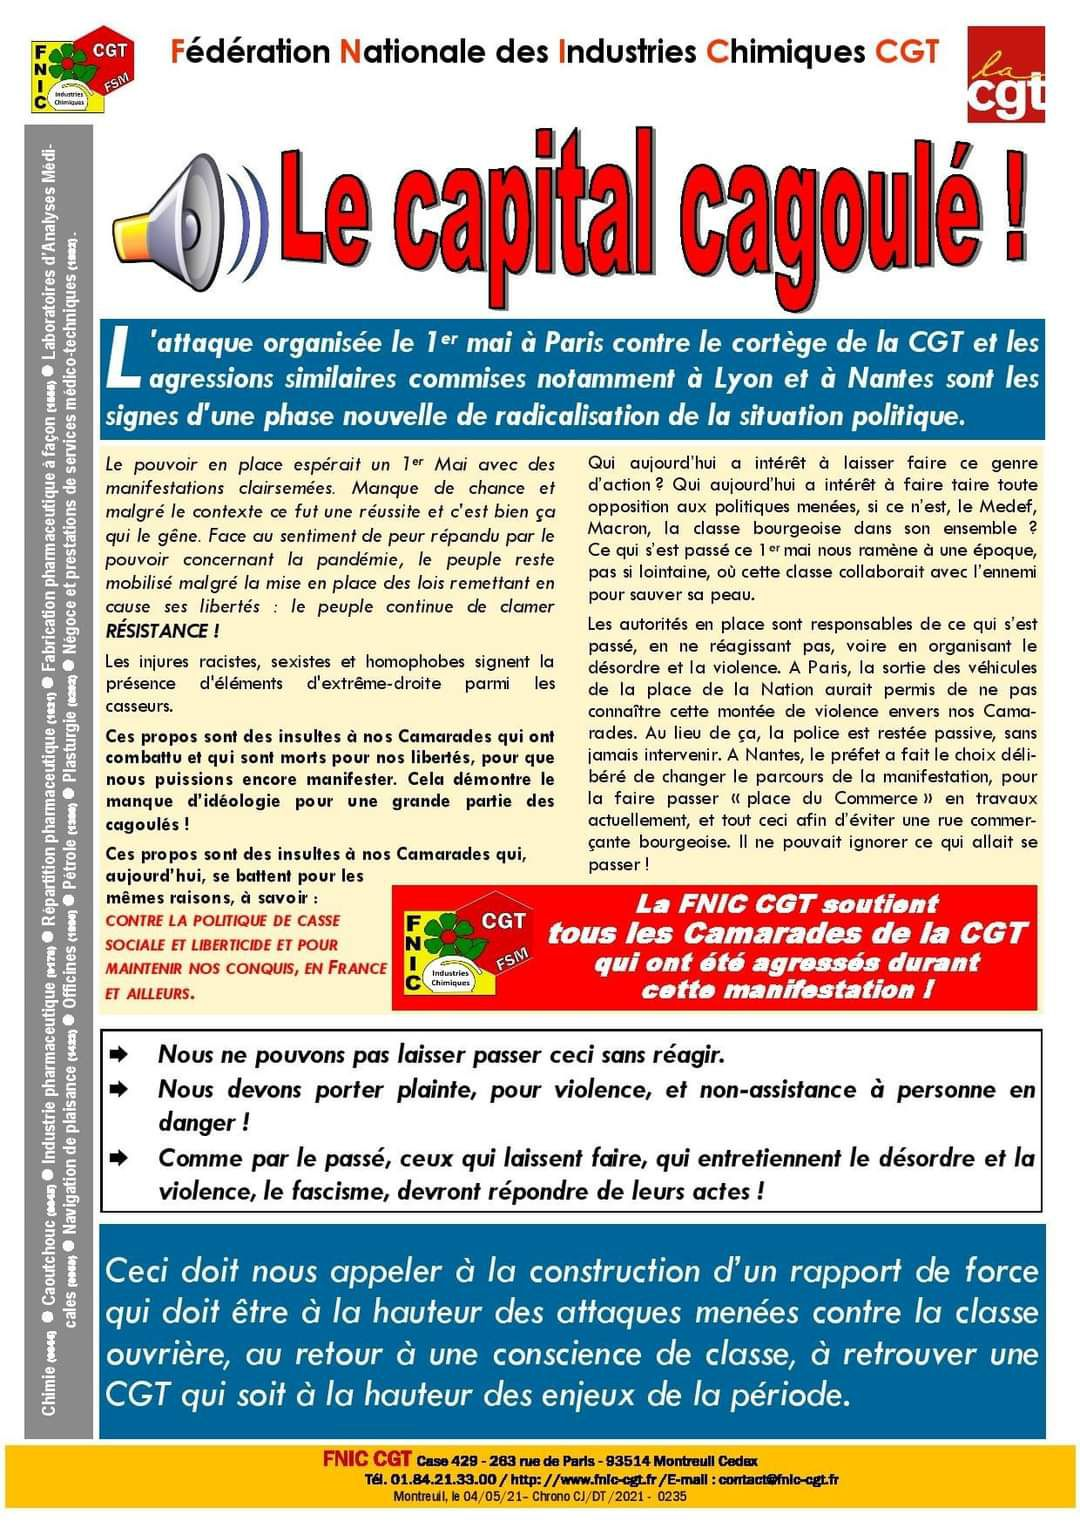 """Le capital cagoulé !"""